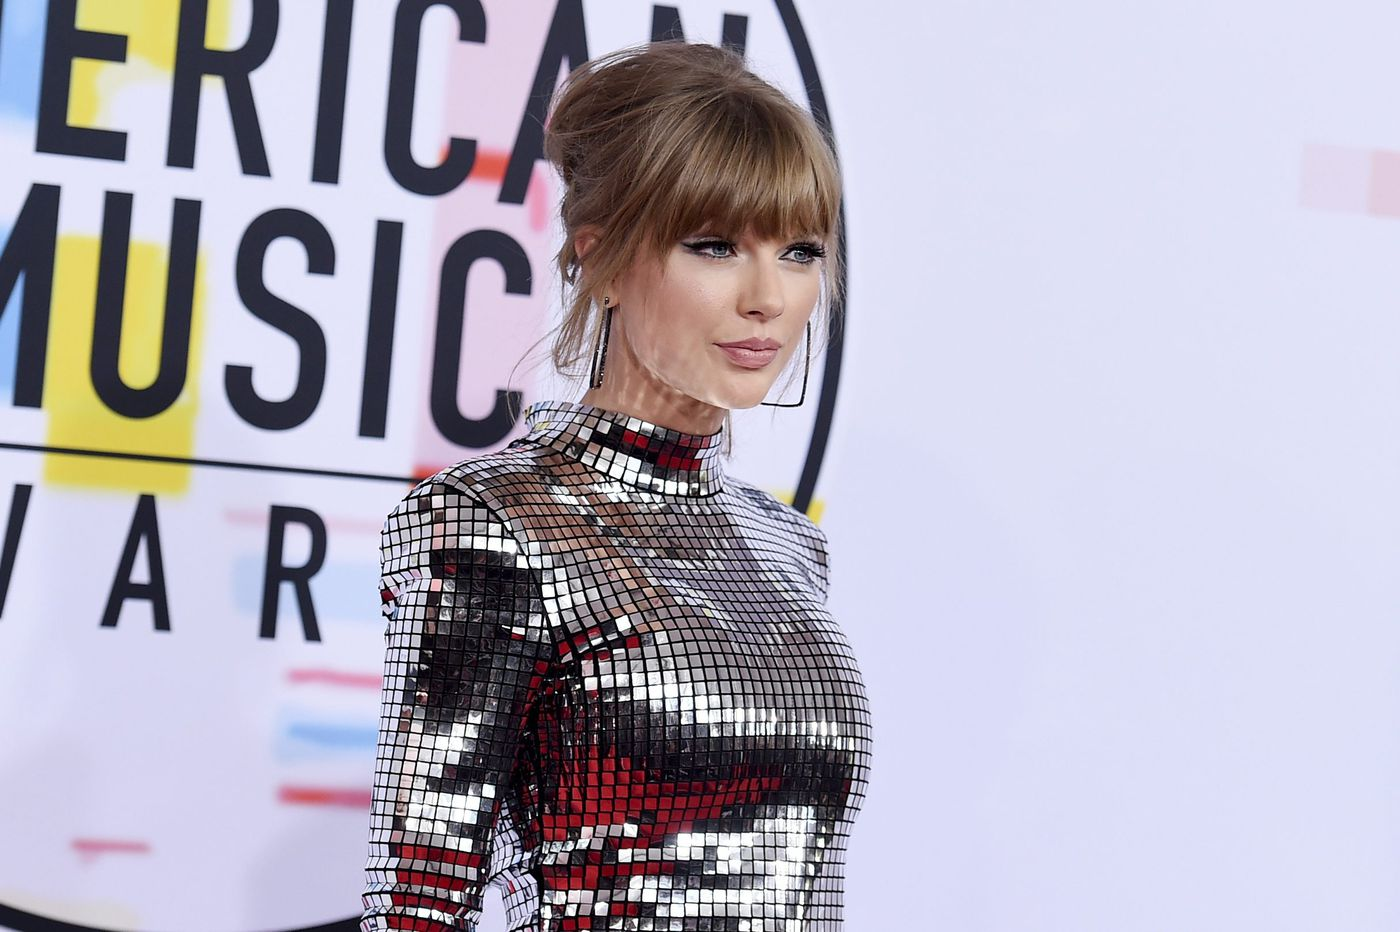 Taylor Swift slammed on social media after endorsed candidate loses Senate race in Tennessee